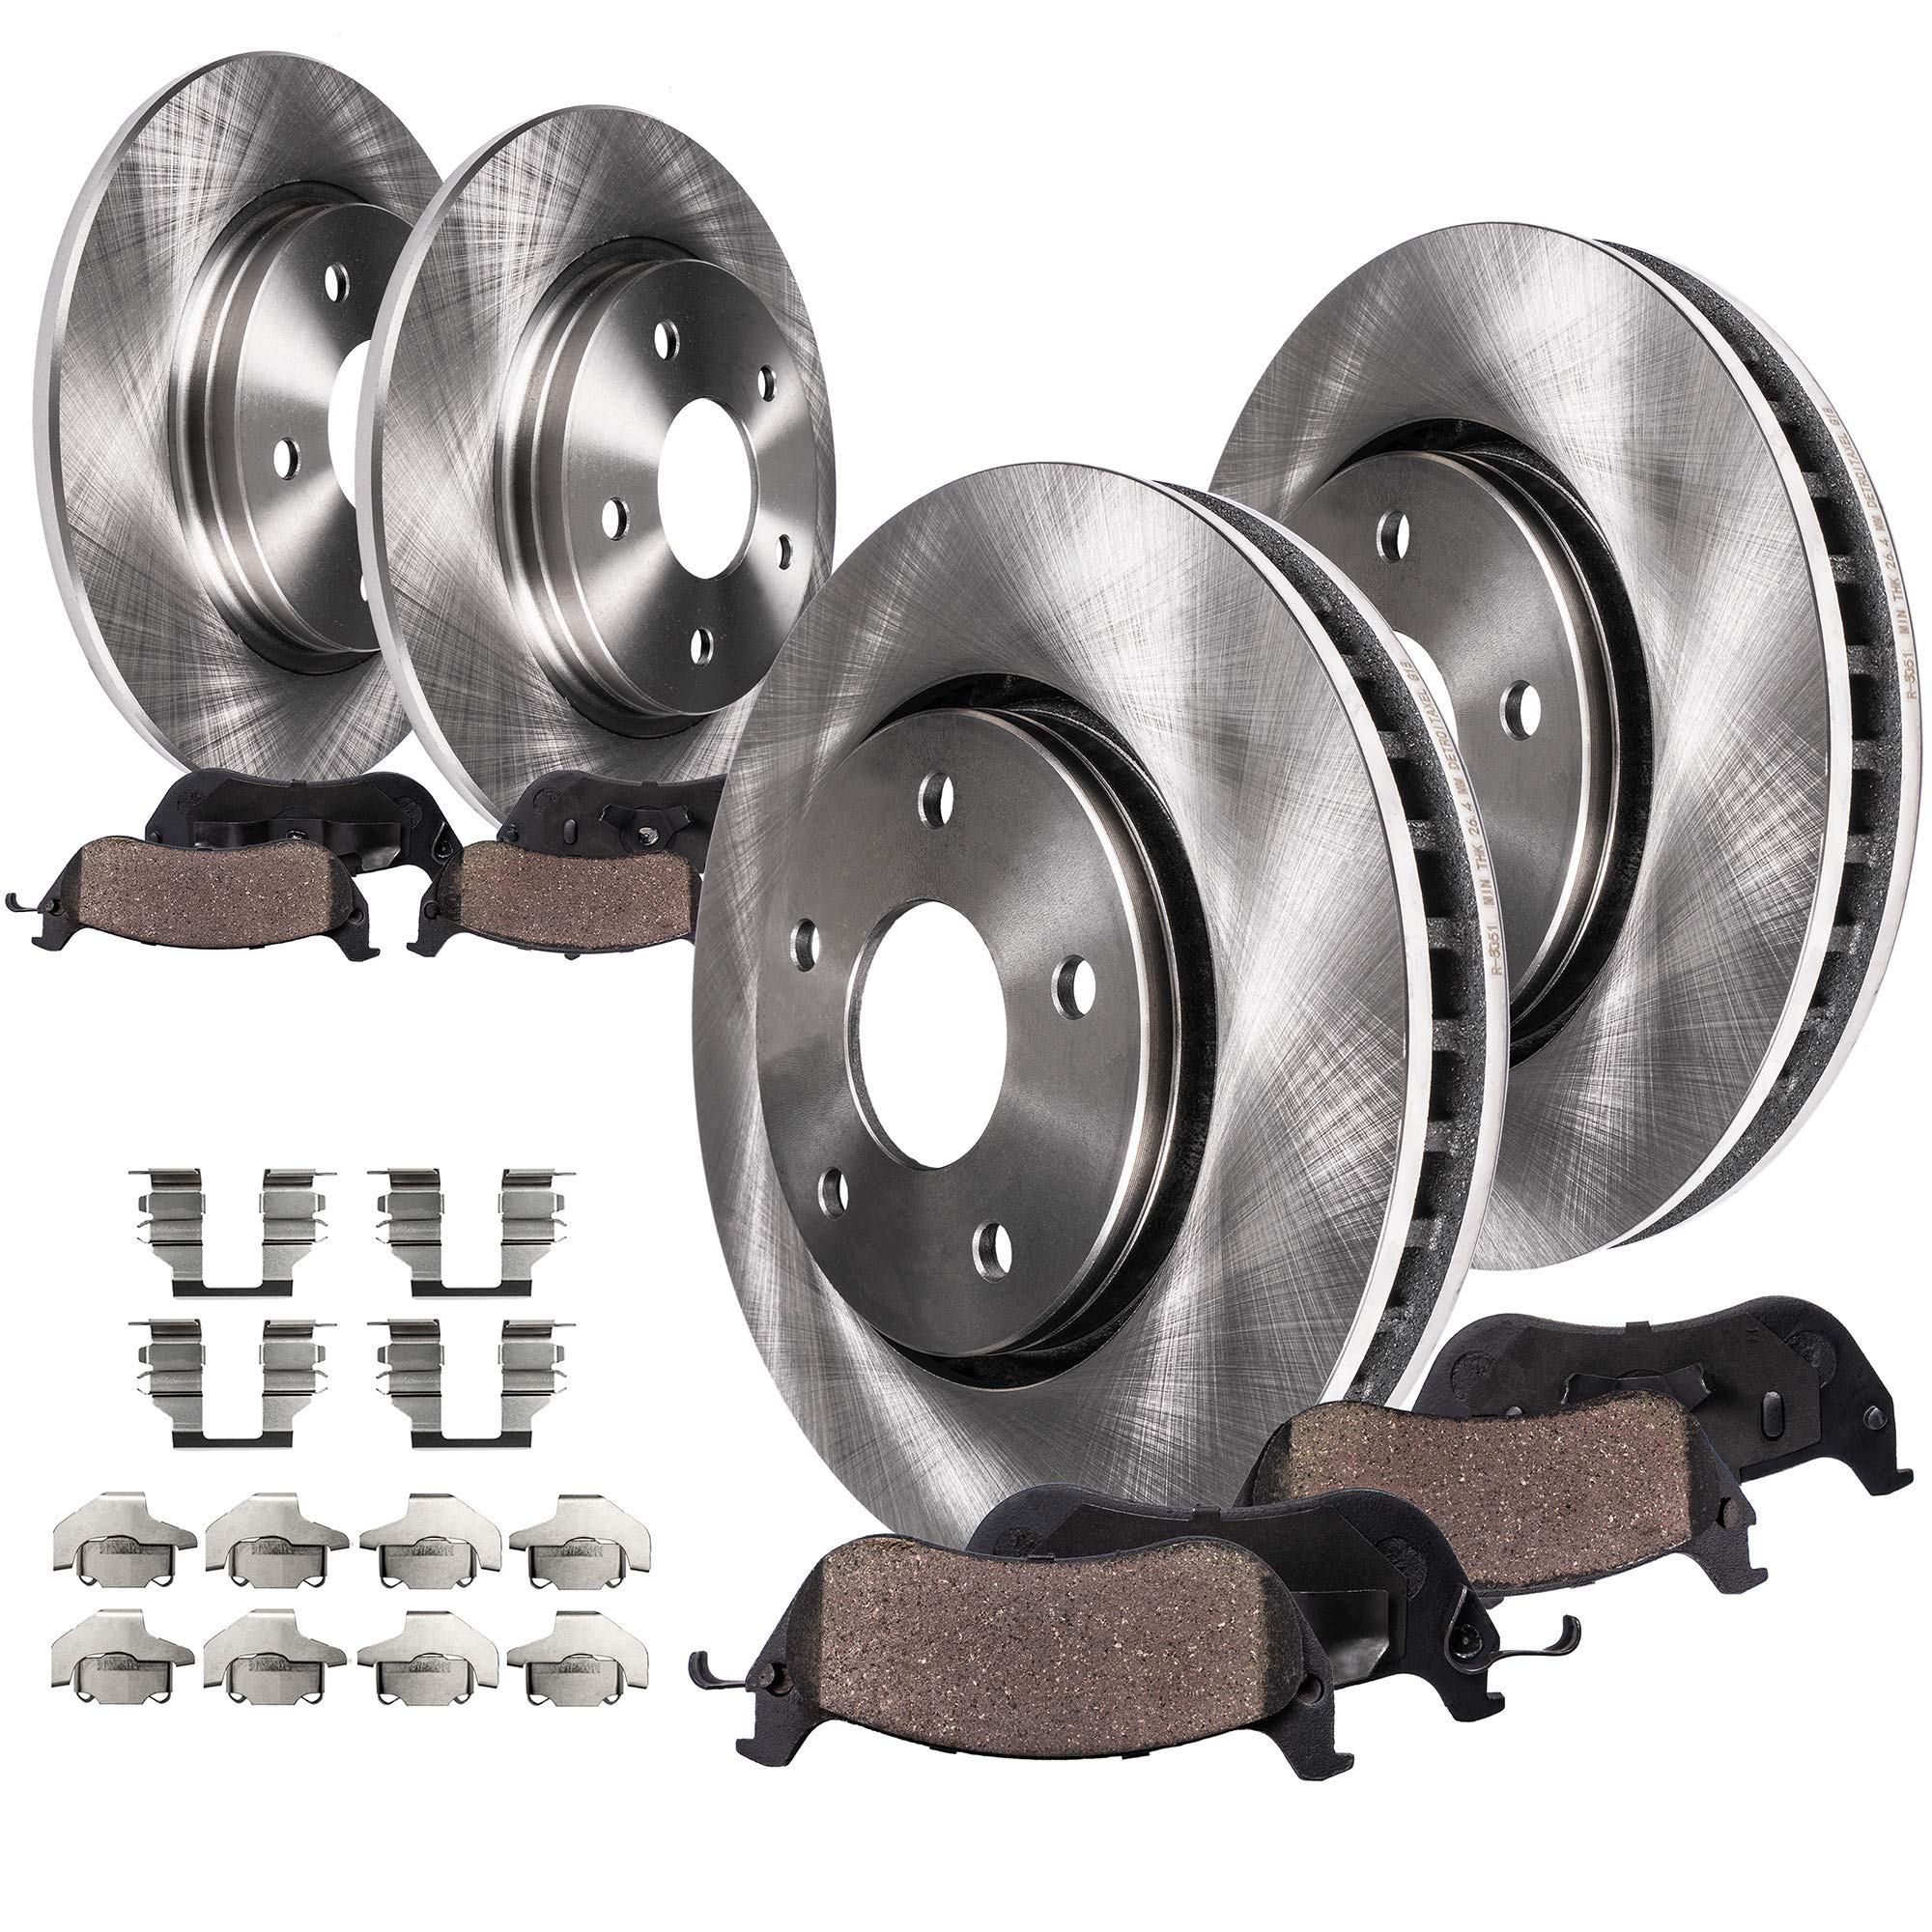 2003 2004 2005 2006 2007 Fit Jeep Liberty OE Replacement Rotors w//Ceramic Pads R